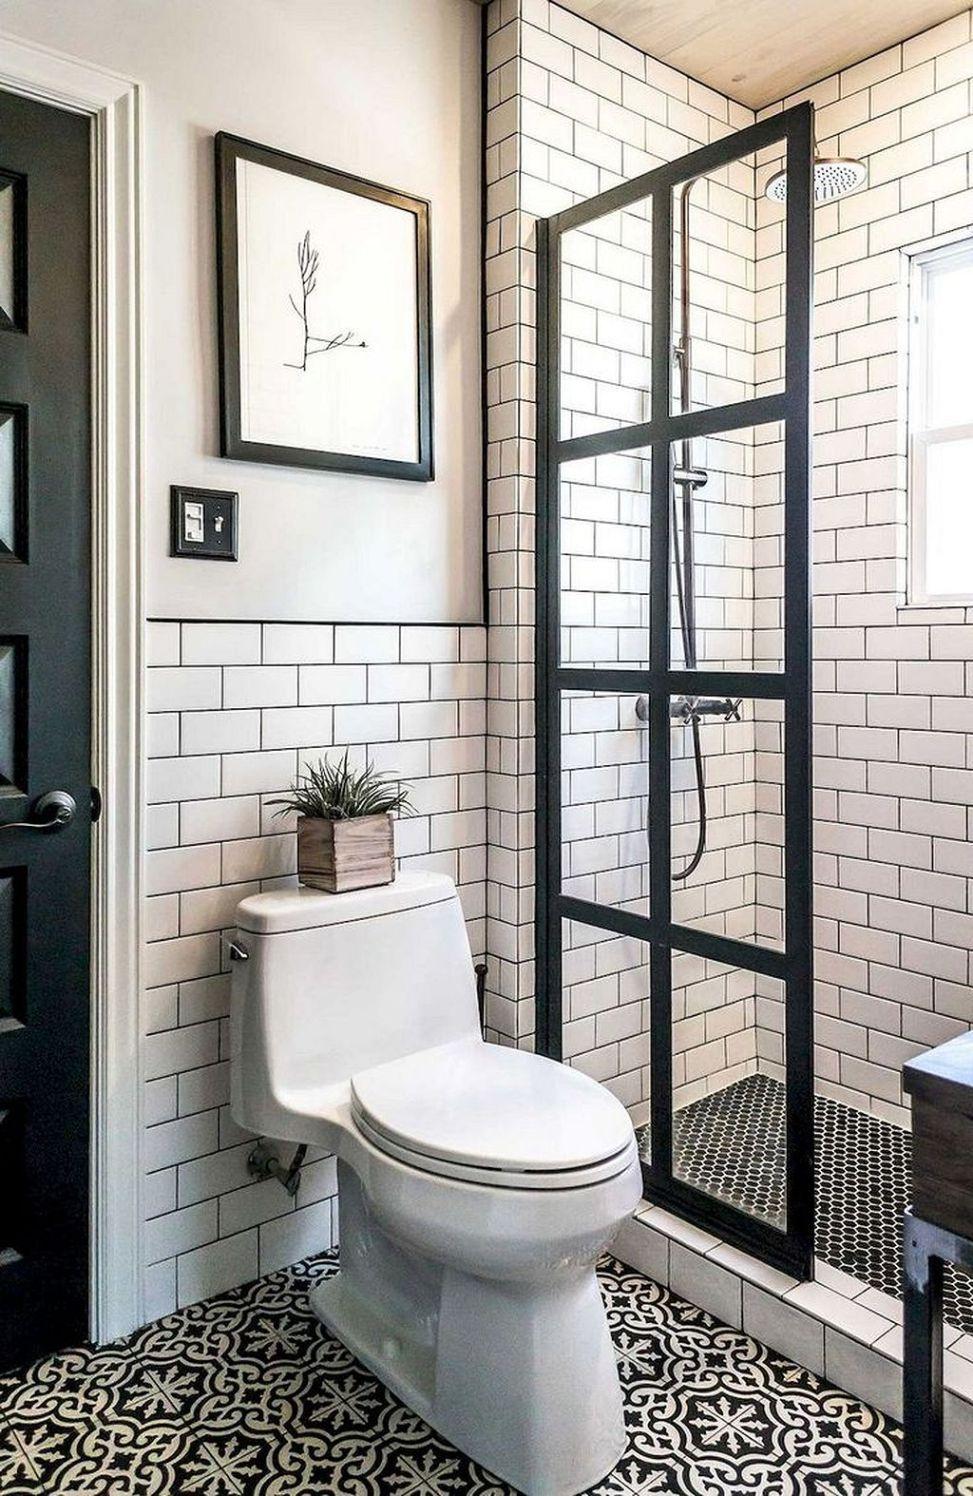 43 Good Small Master Bathroom Remodel Ideas Froggypic Com Small Farmhouse Bathroom Bathroom Remodel Master Simple Bathroom